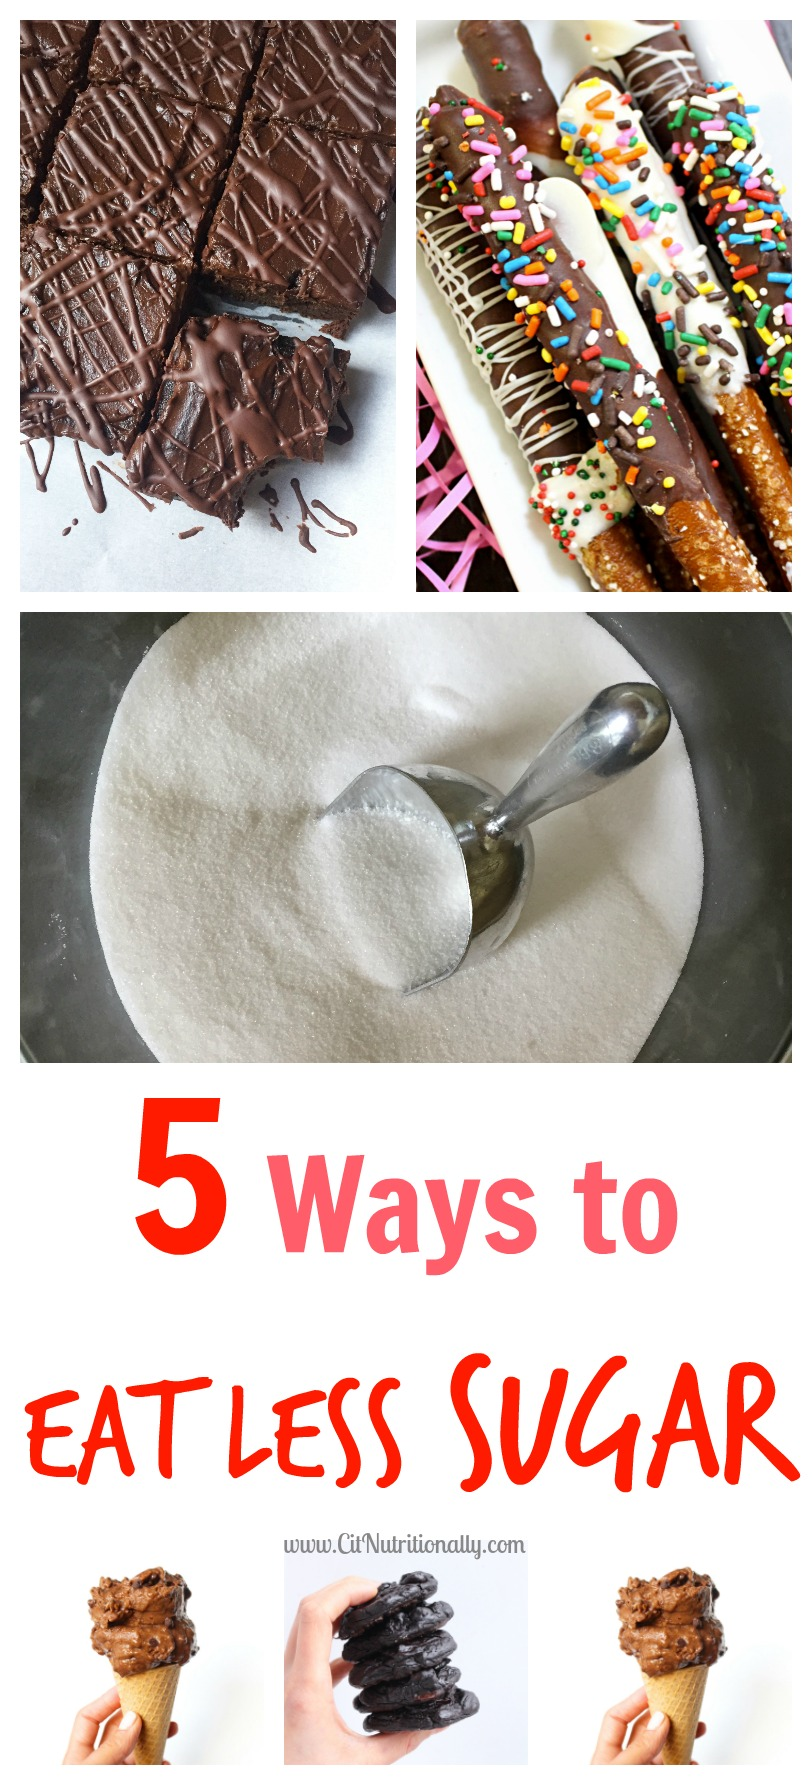 What I Learned from My Sugar Detox + 5 Ways to Eat Less Sugar | C it Nutritionally